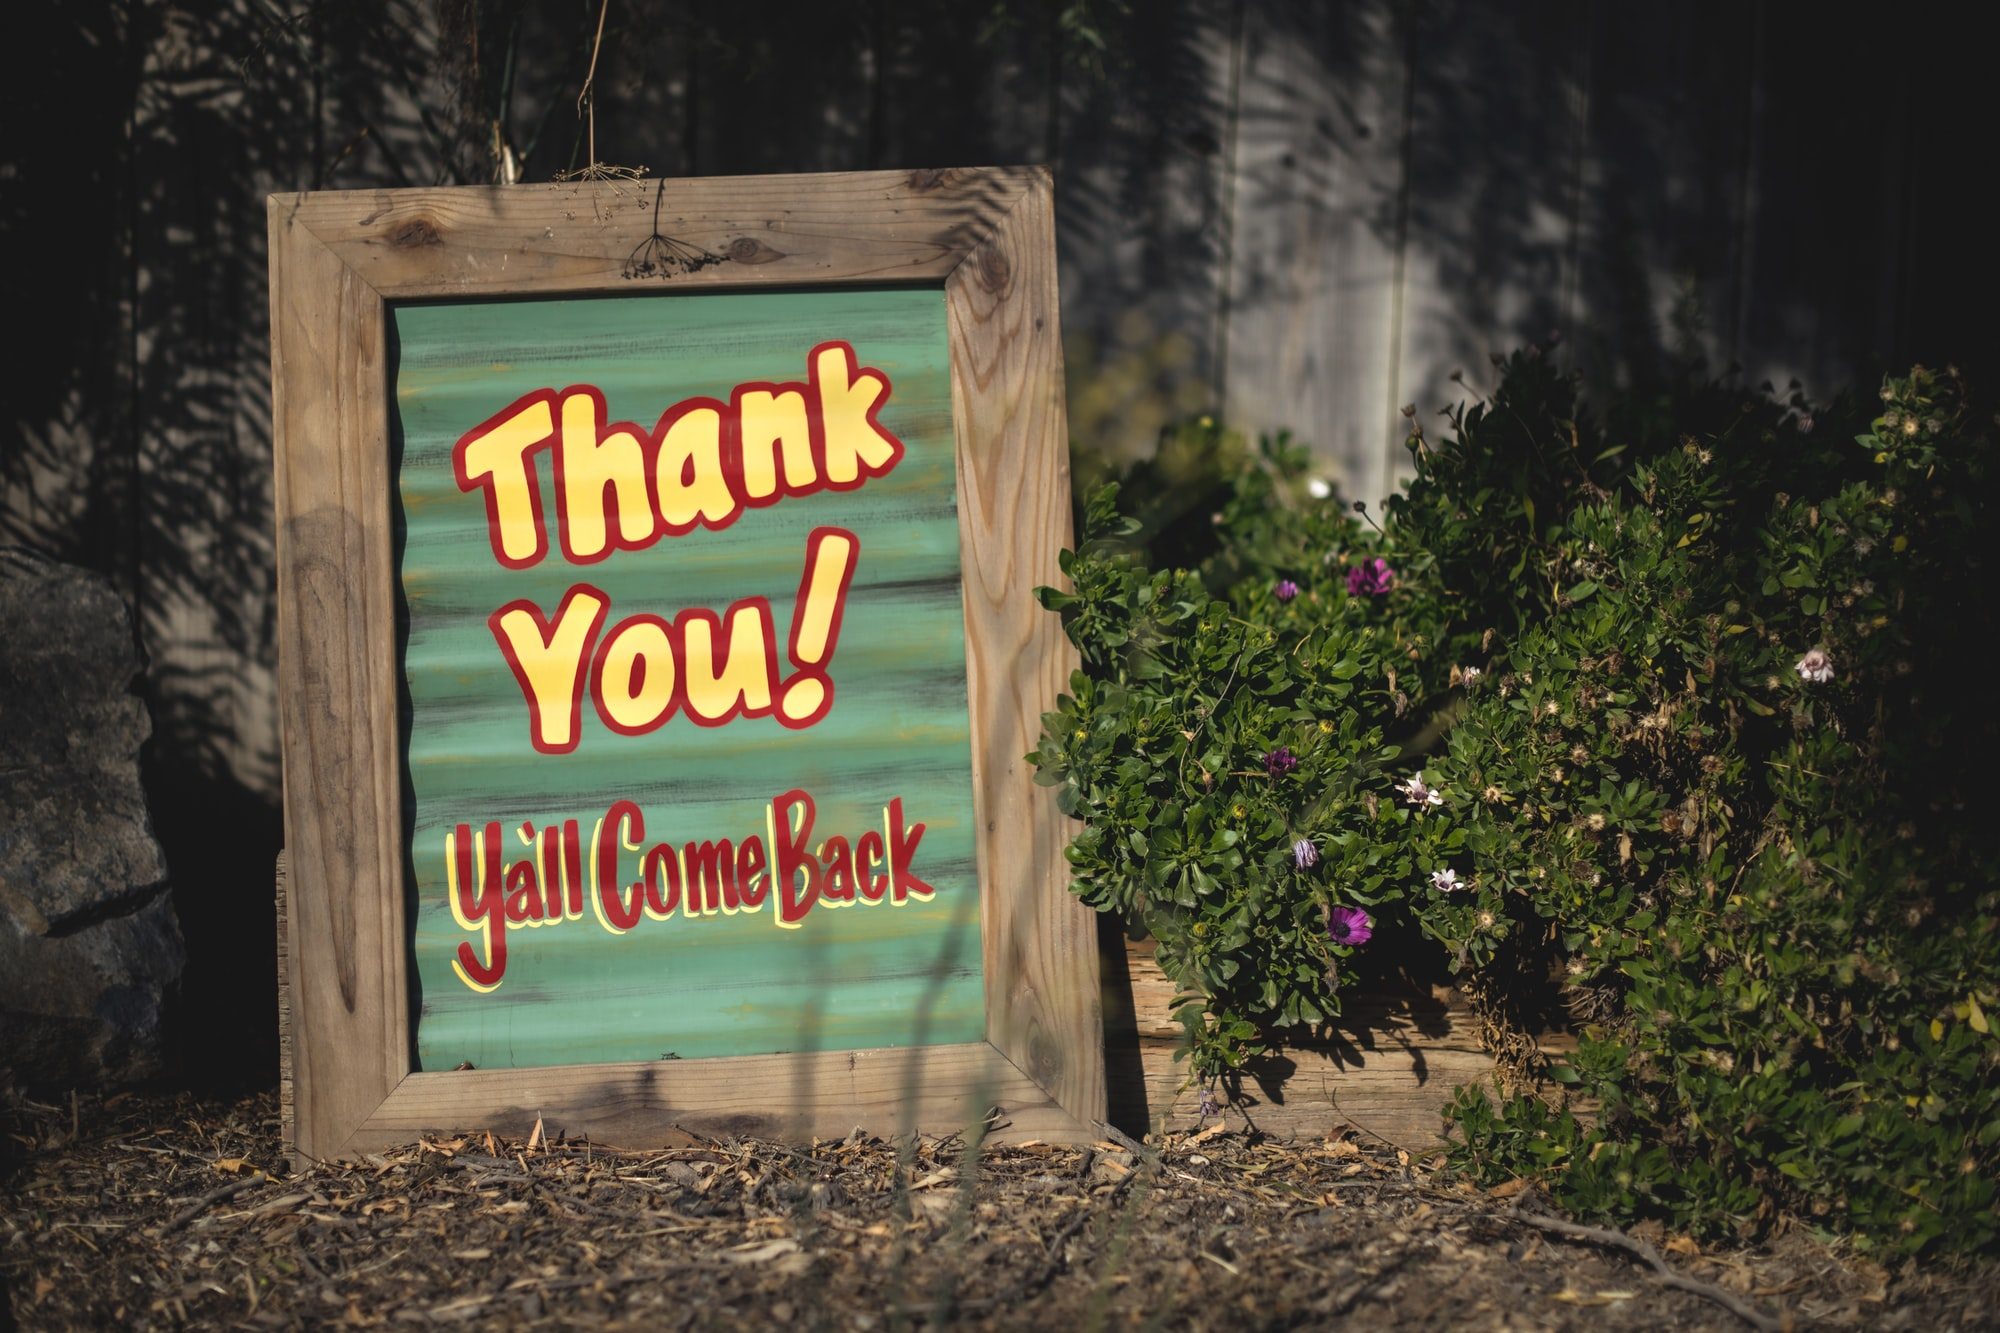 Goodkind for Saying Thank You